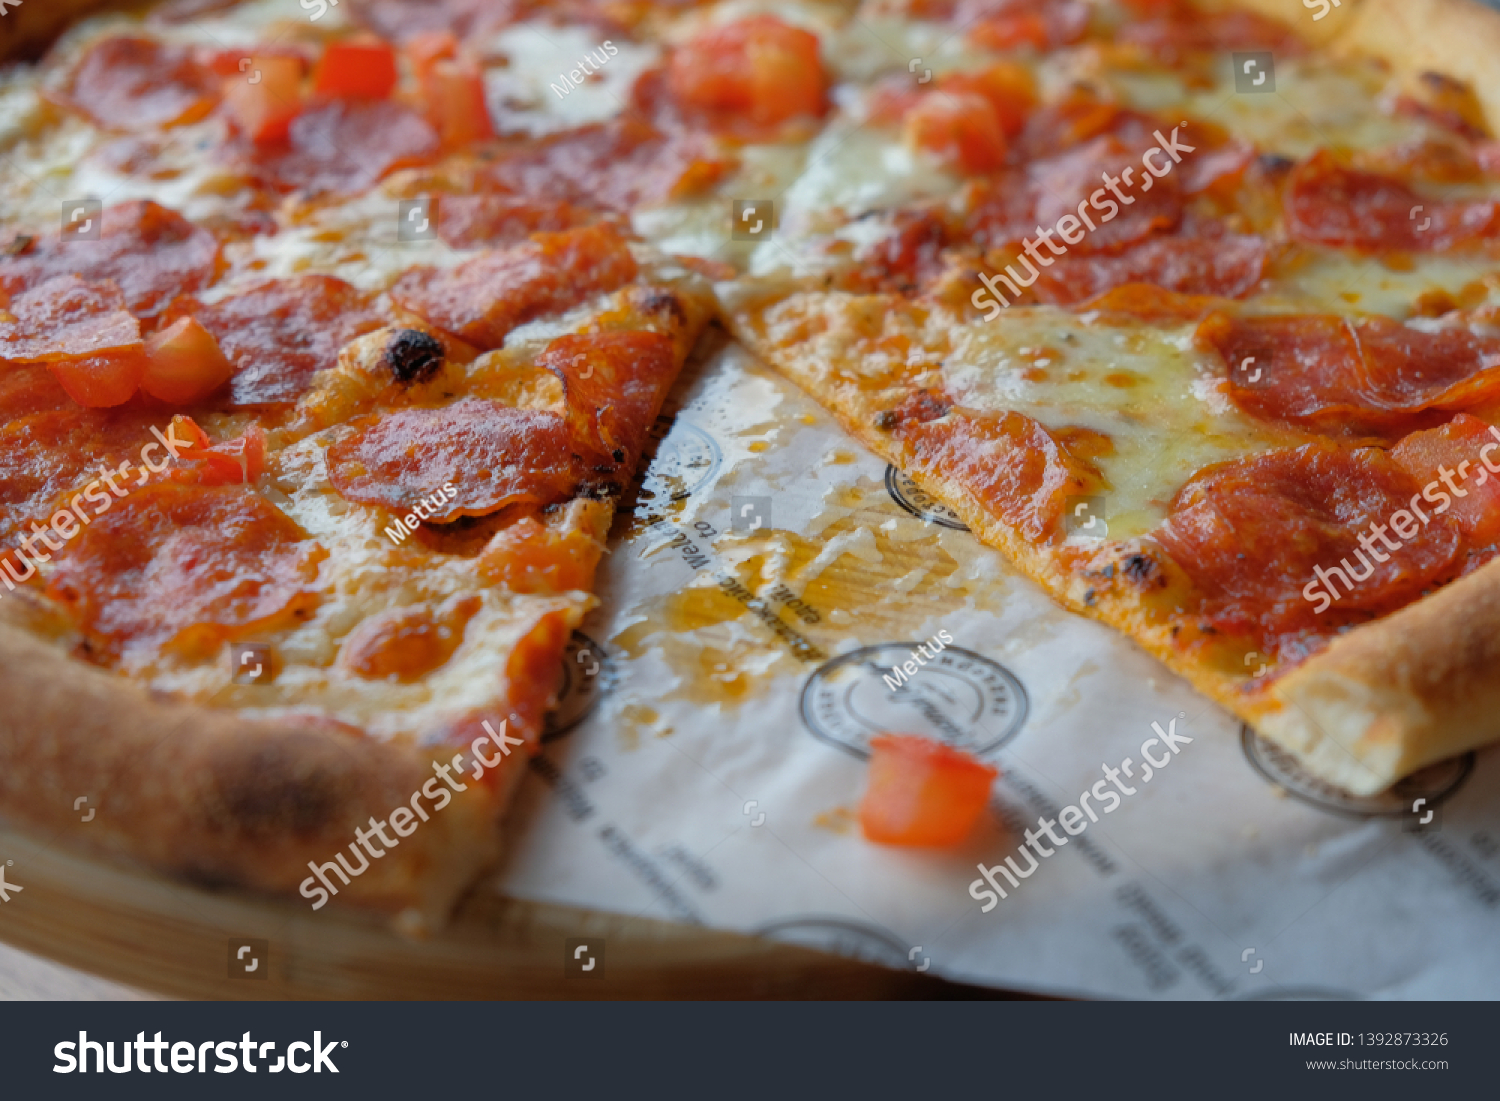 stock-photo-pepperoni-pizza-with-one-pis